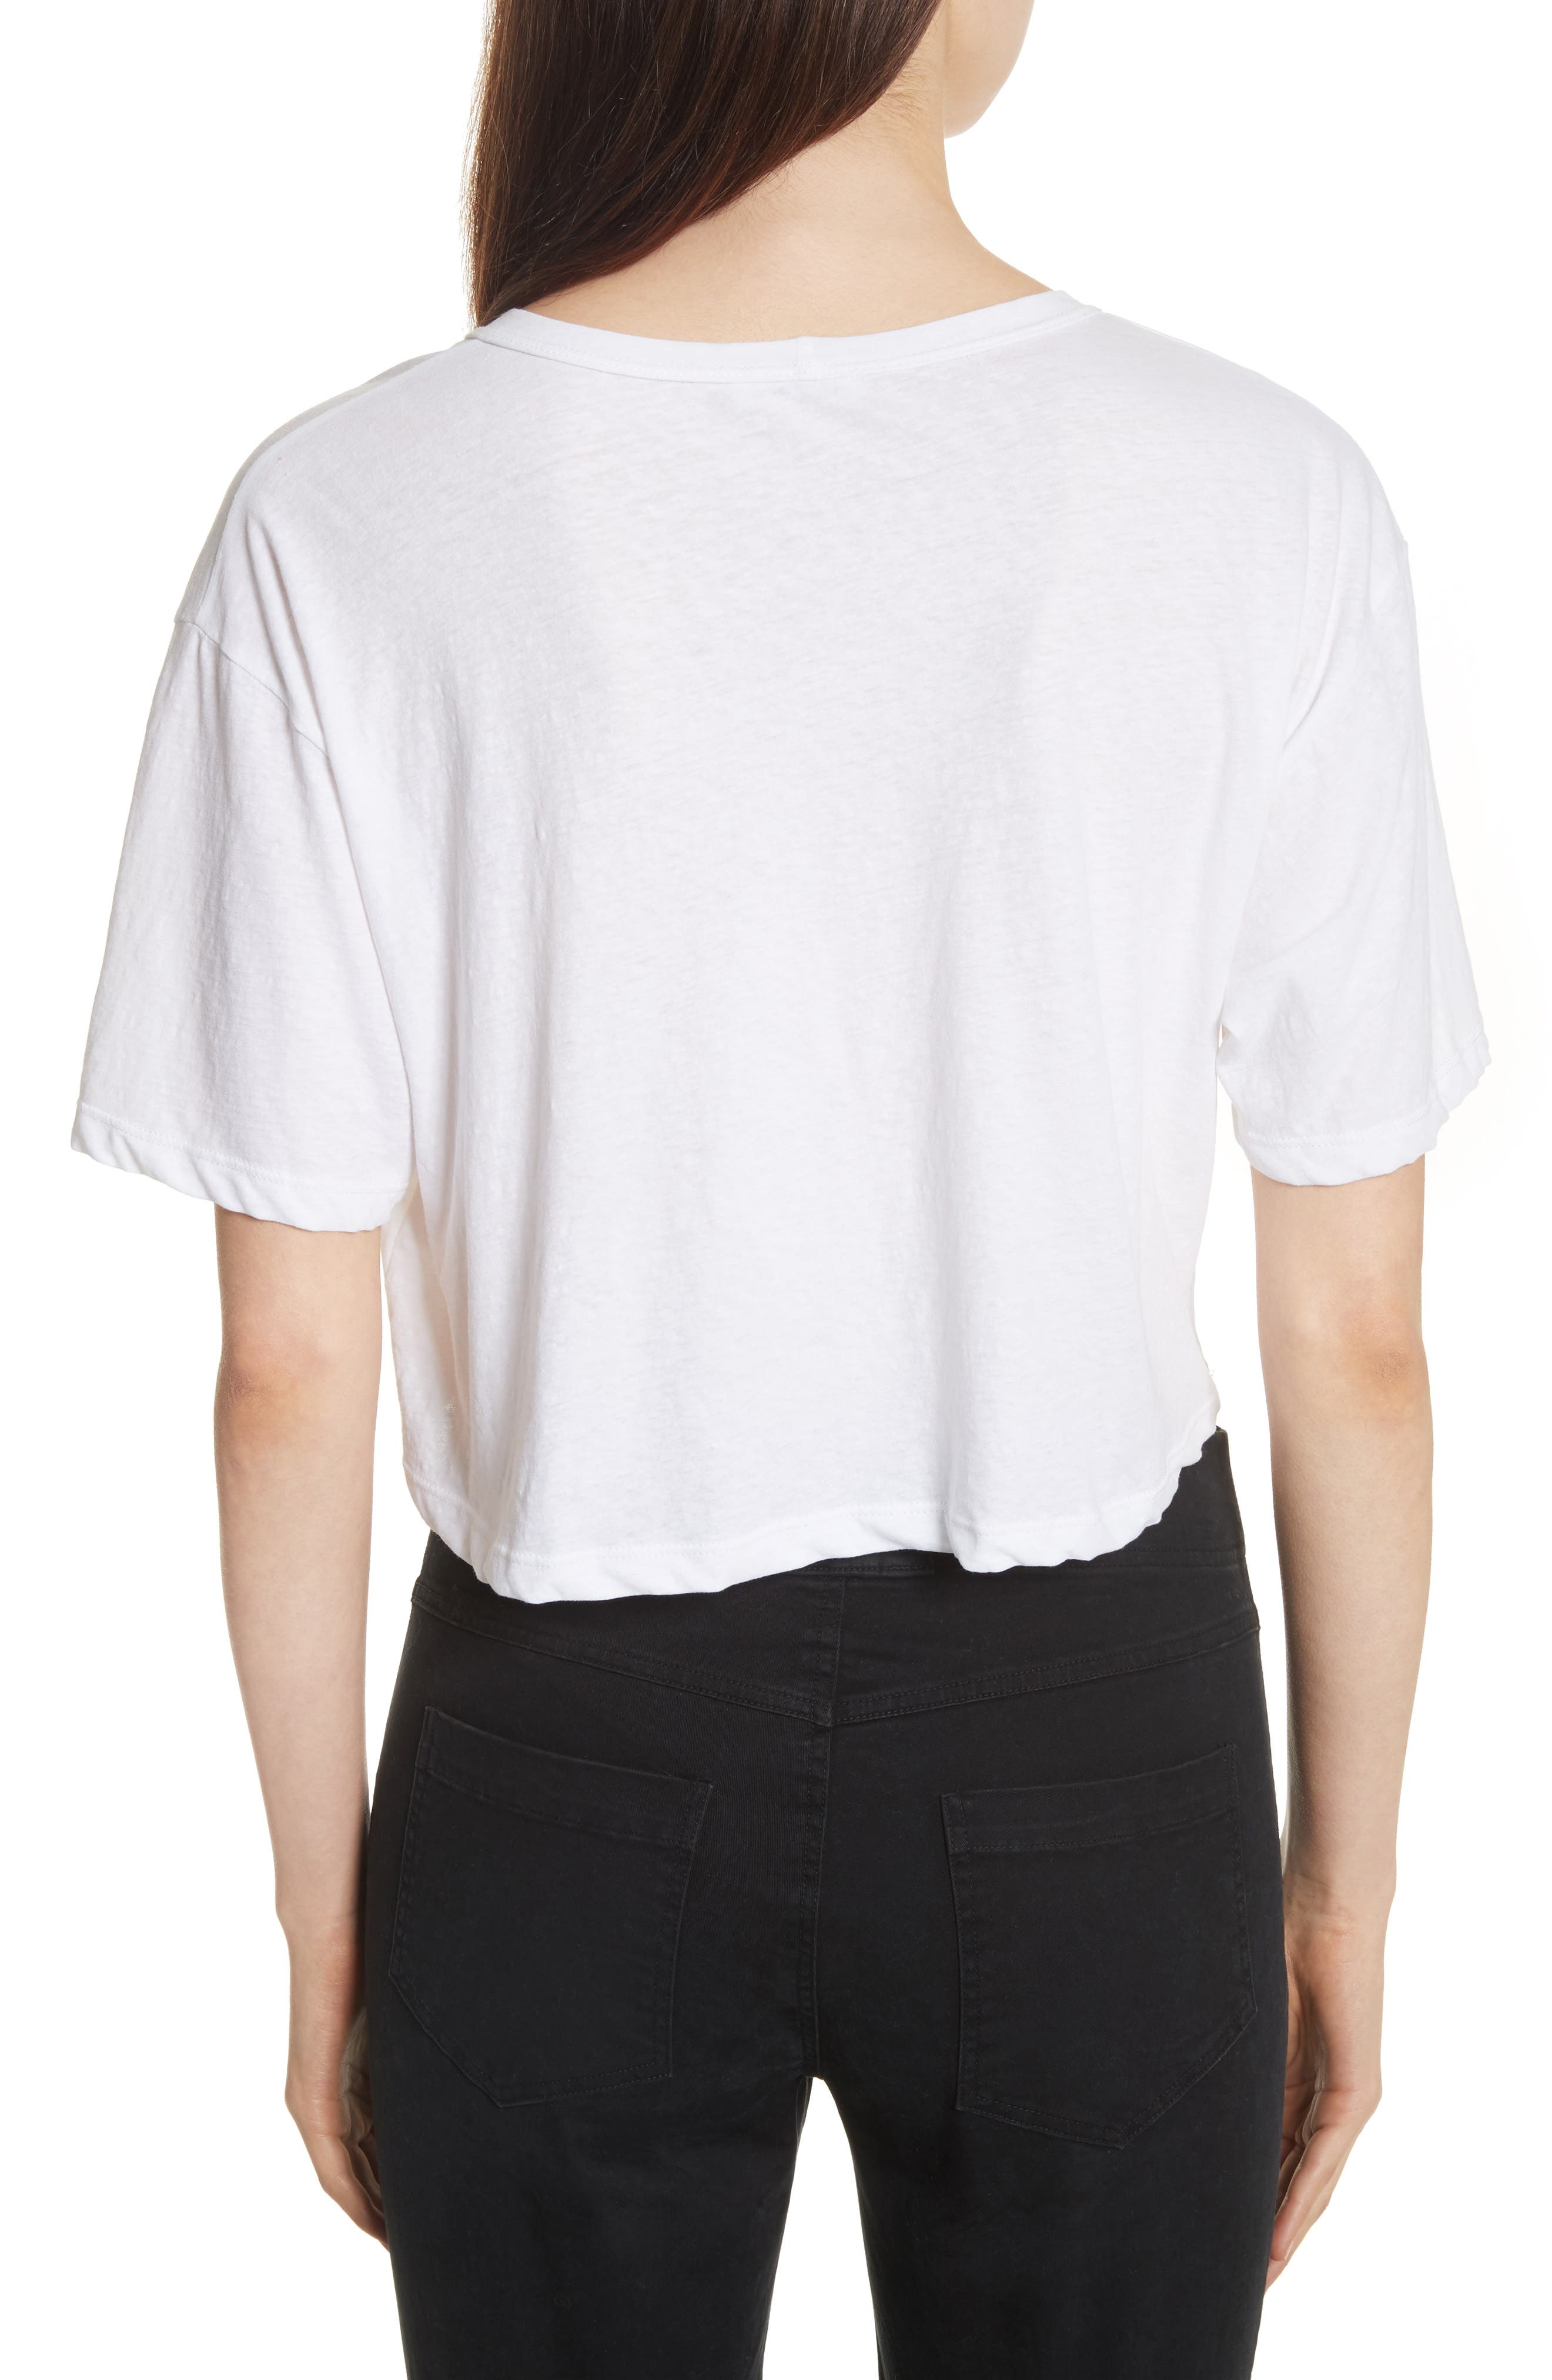 Teagan Palm Embroidered Crop Tee,                             Alternate thumbnail 2, color,                             101